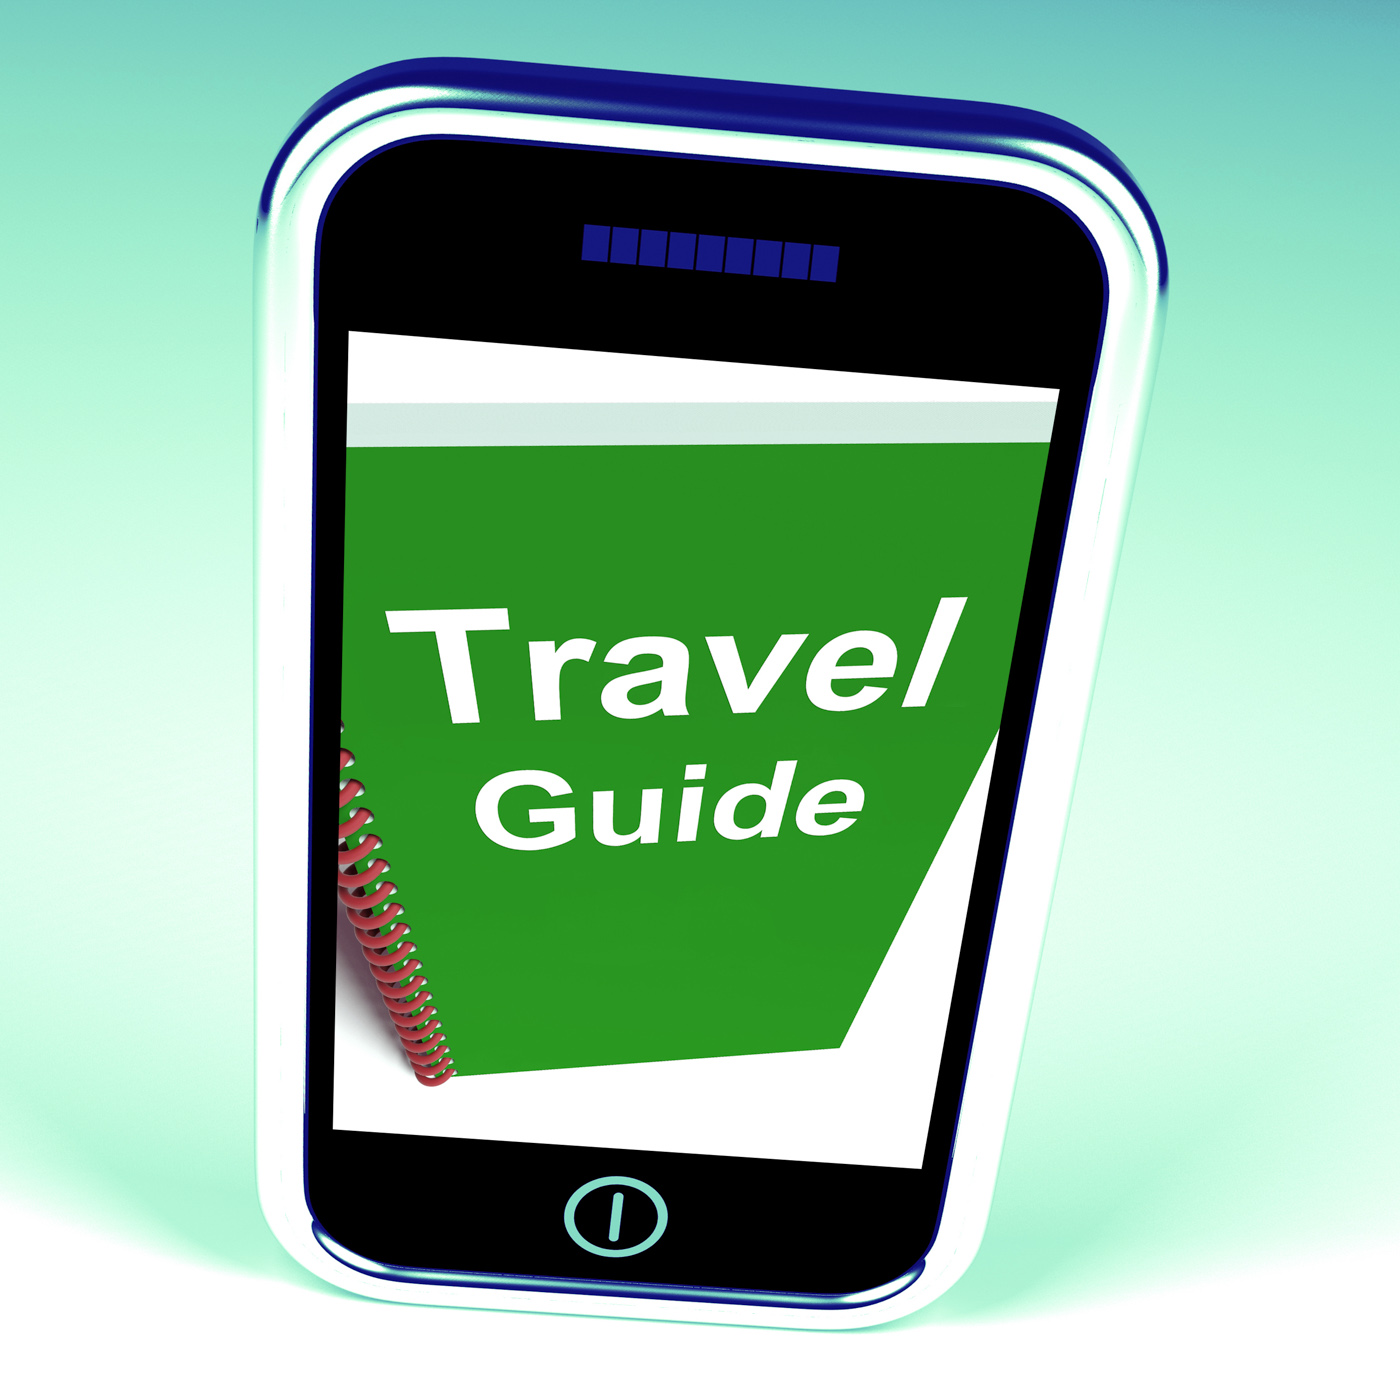 Travel guide phone represents advice on traveling photo